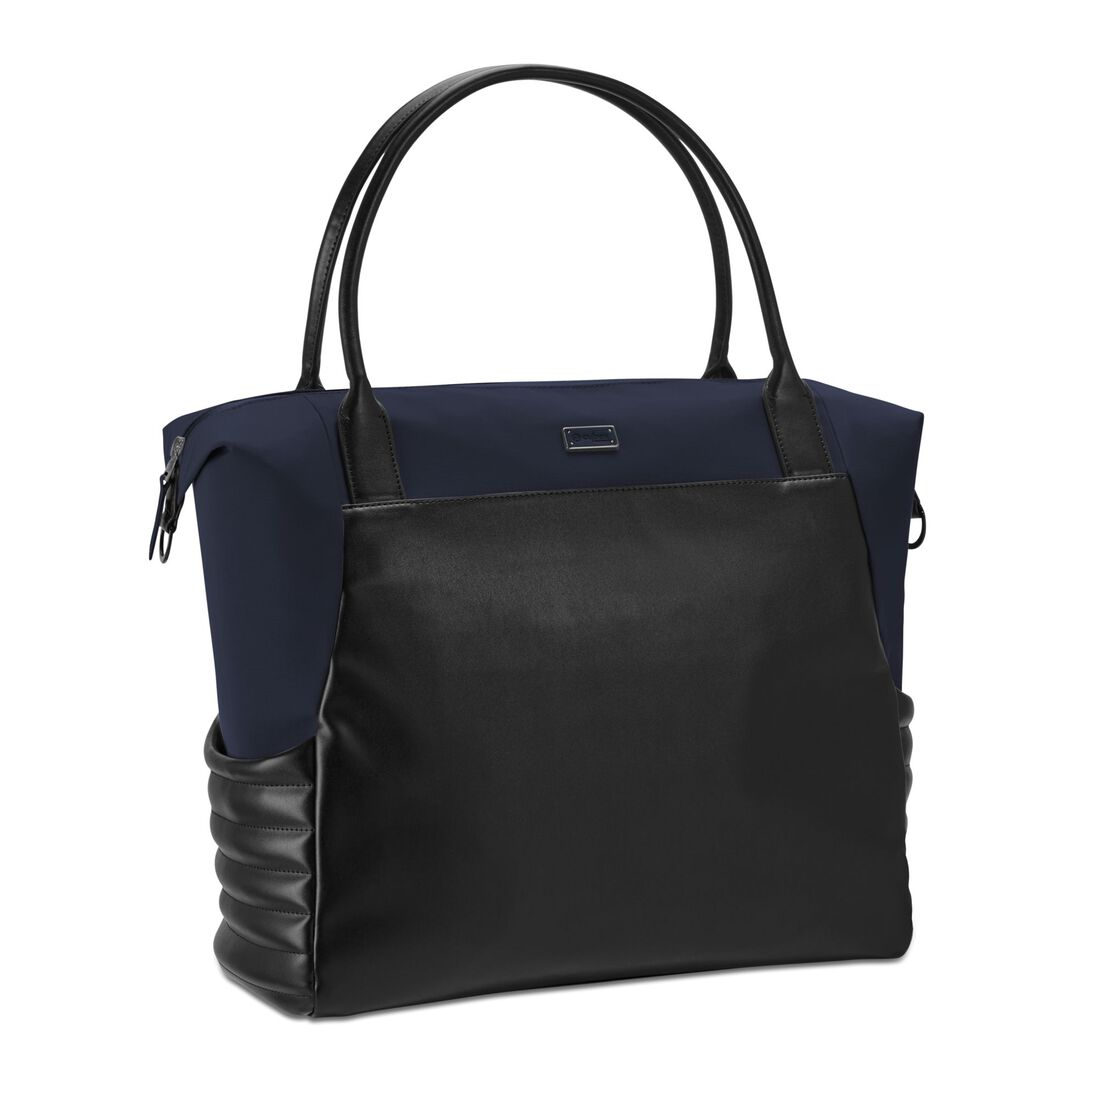 CYBEX Priam Wickeltasche - Nautical Blue in Nautical Blue large